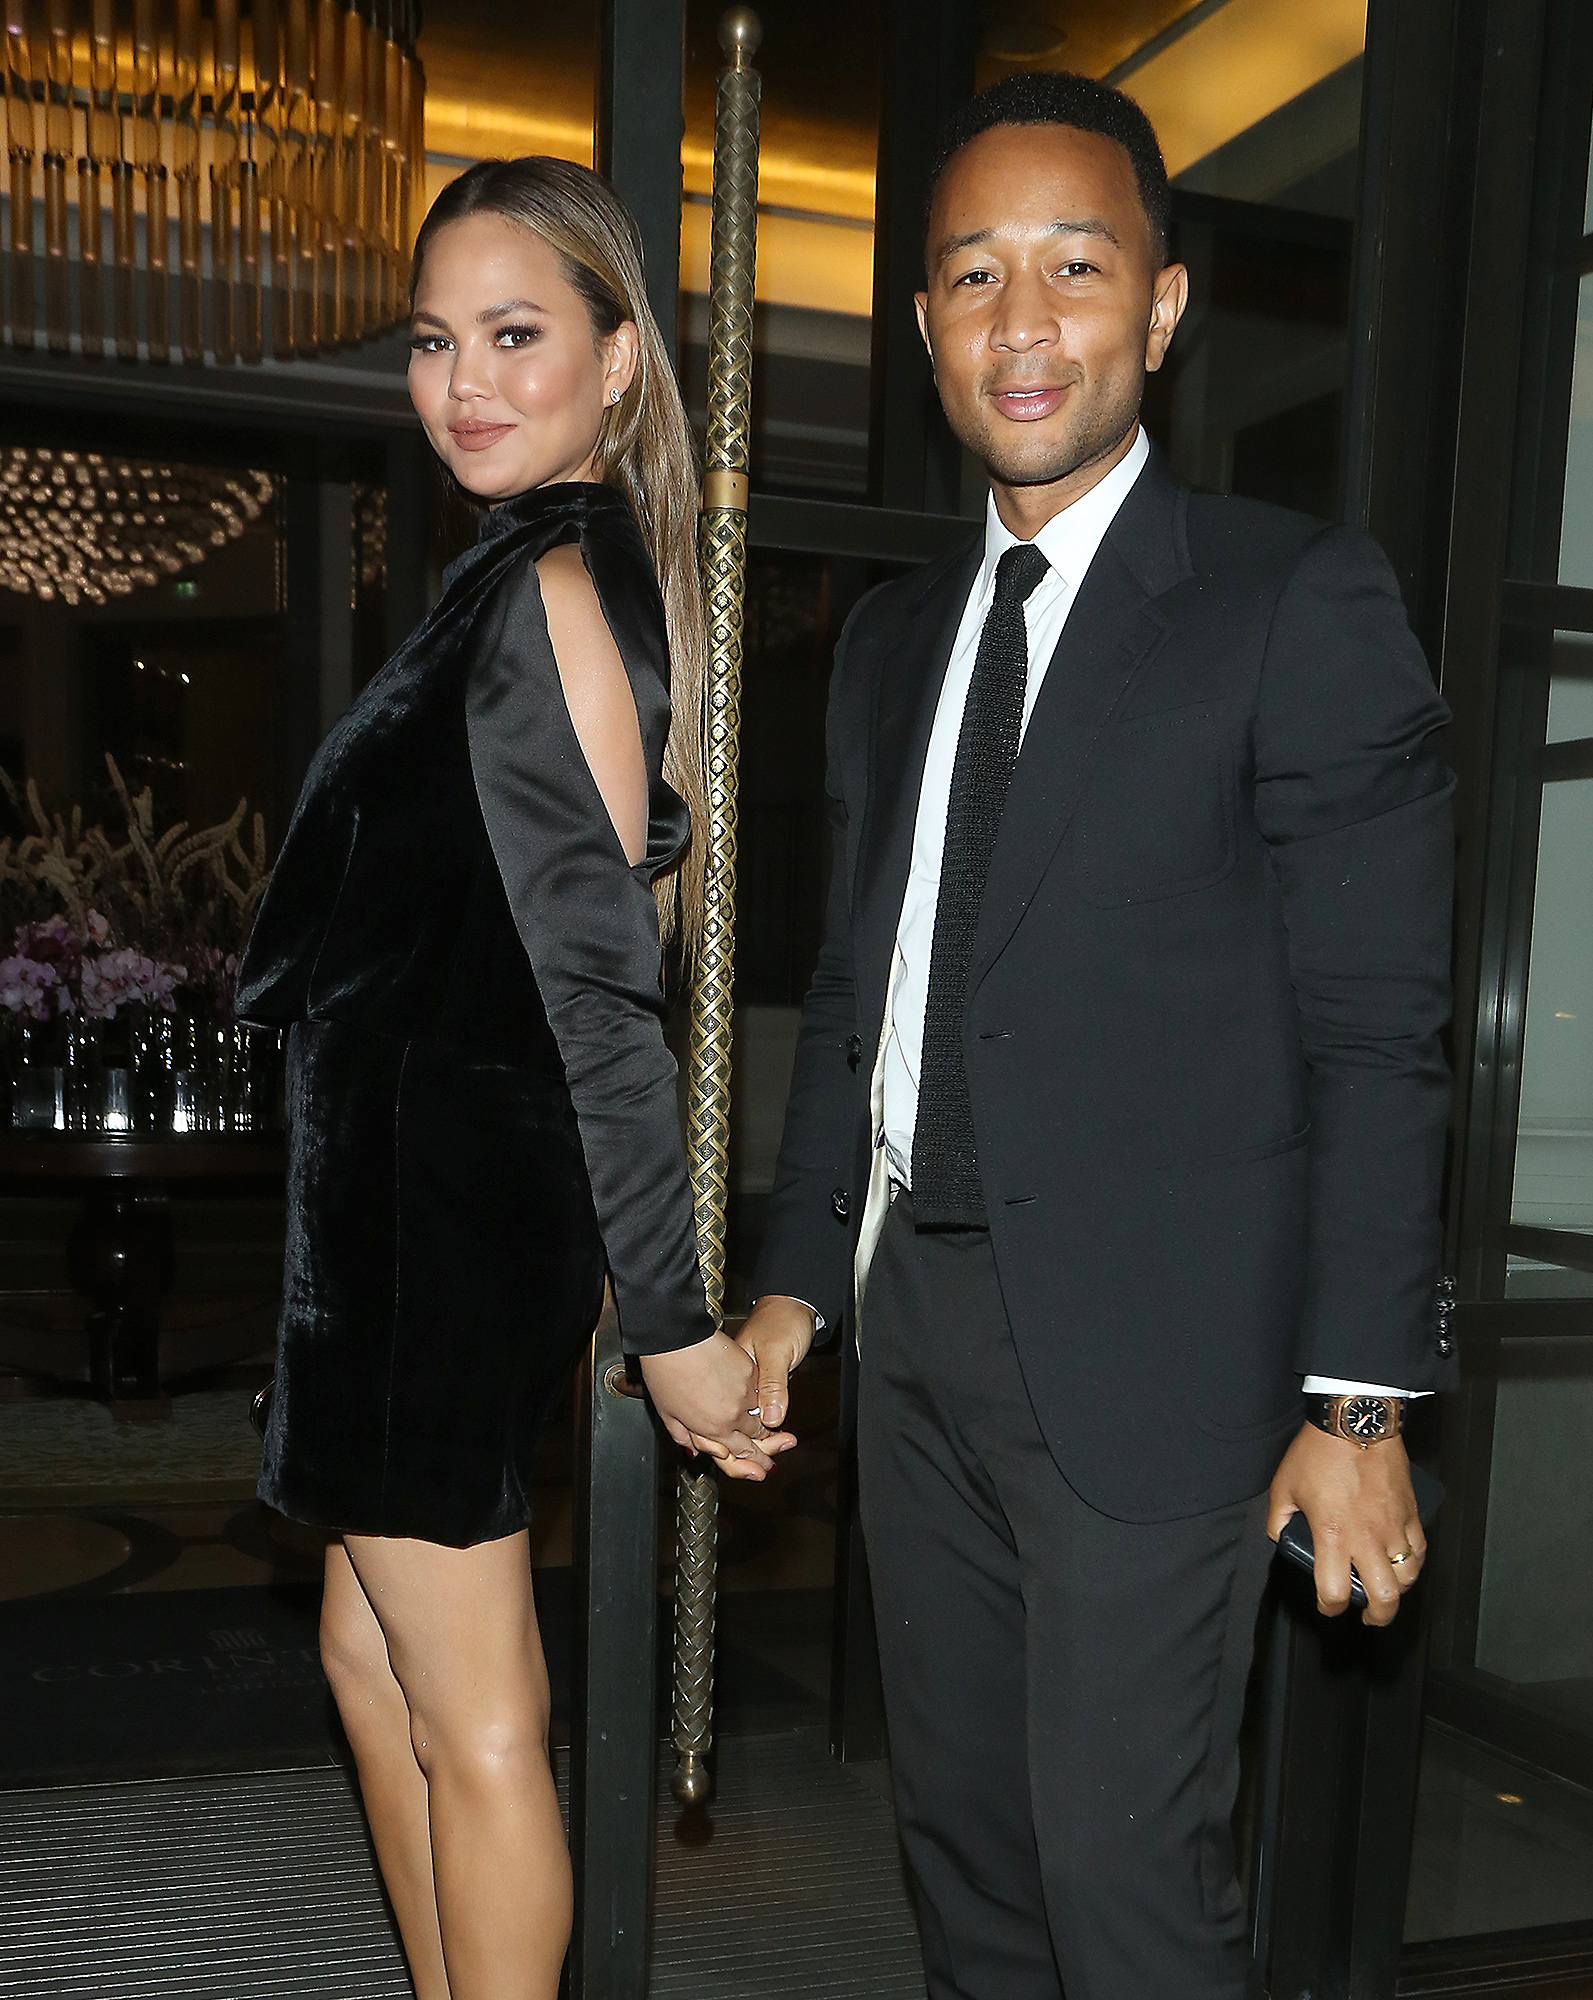 EXCLUSIVE: Chrissy Teigen and John Legend celebrate there fourth wedding anniversary with a date night in London